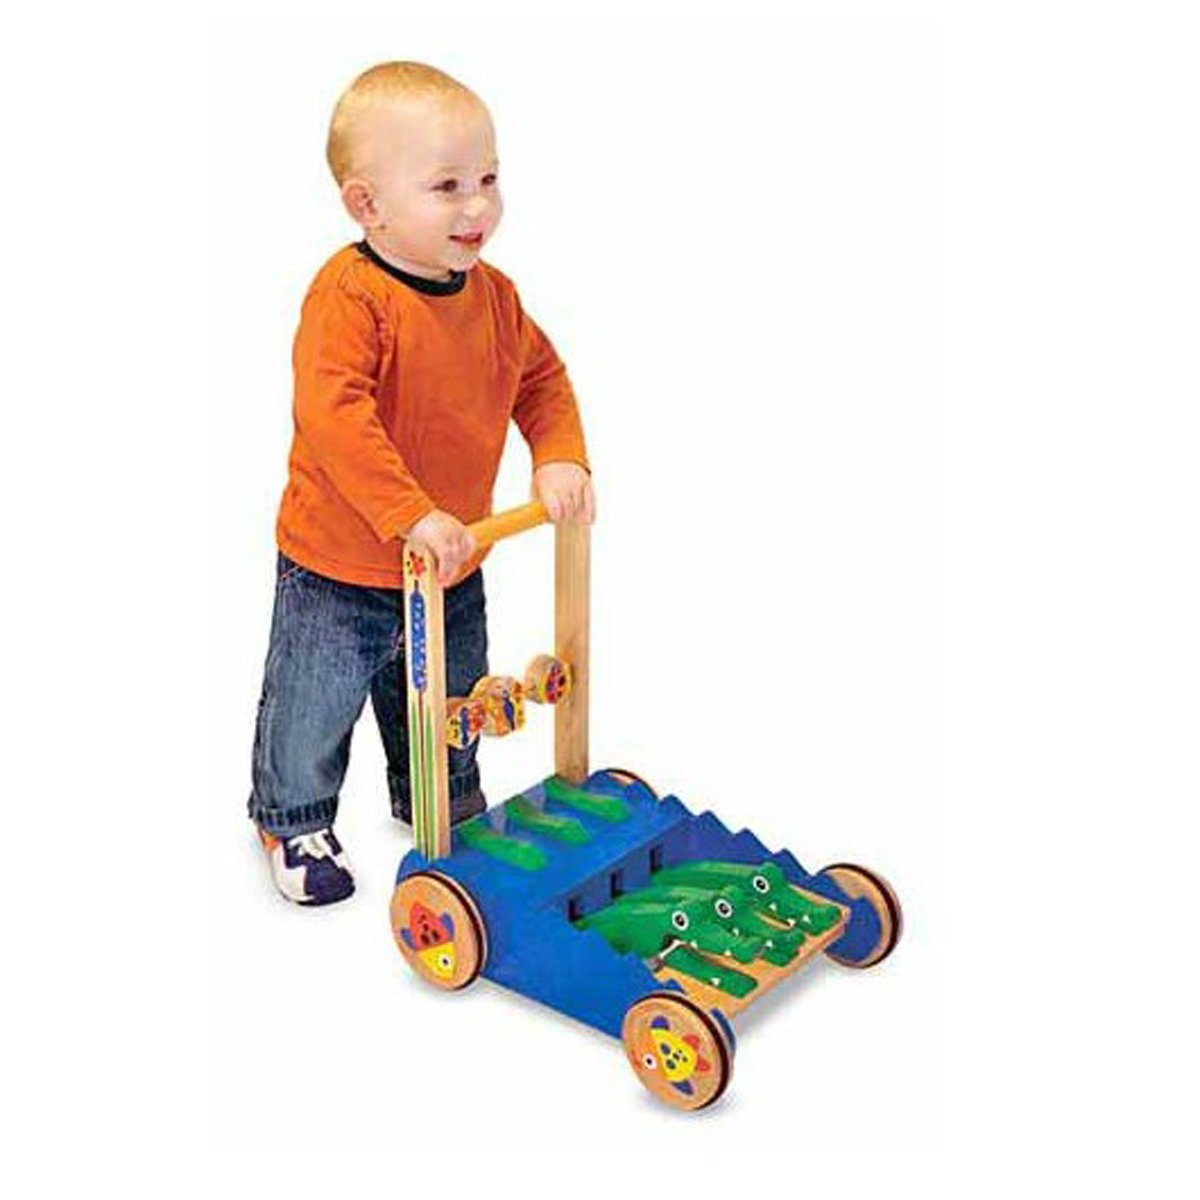 Wooden Toys For 1 Year Old Boy